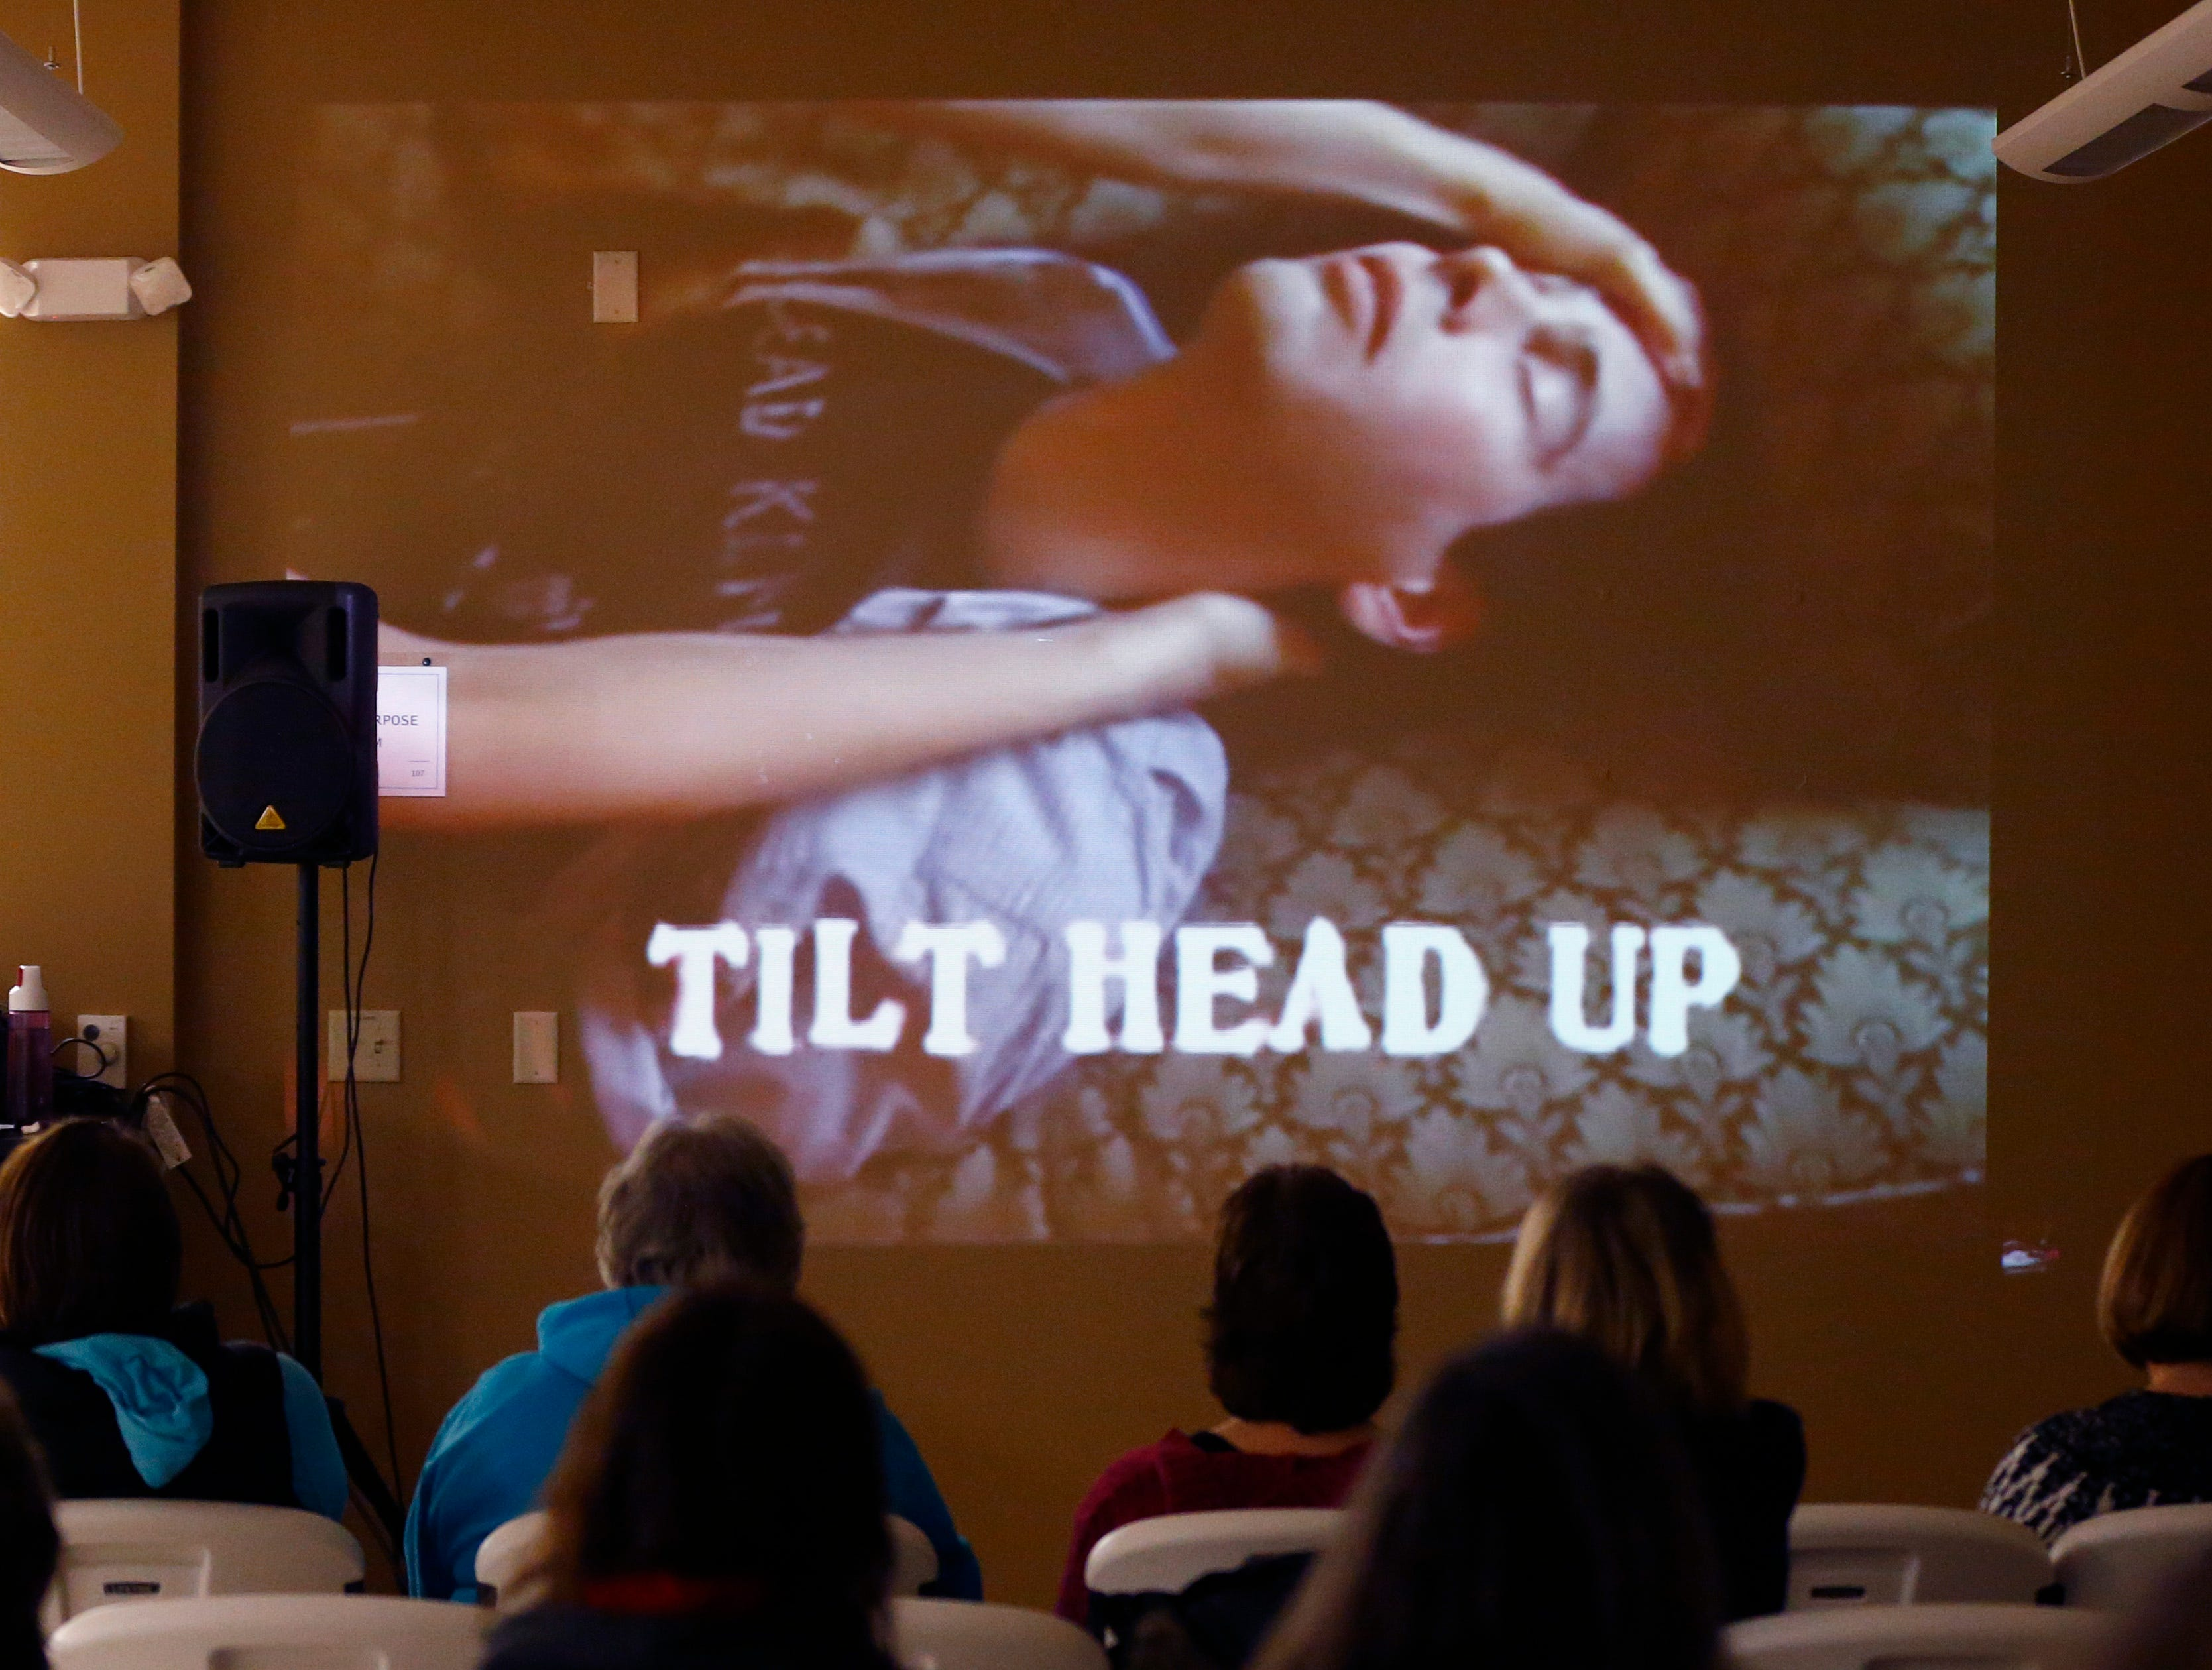 Students watch a video that shows the steps to administer Narcan to counteract an opiate overdose during workshop at the Salvation Army's Greenfield facility on Jan. 24.